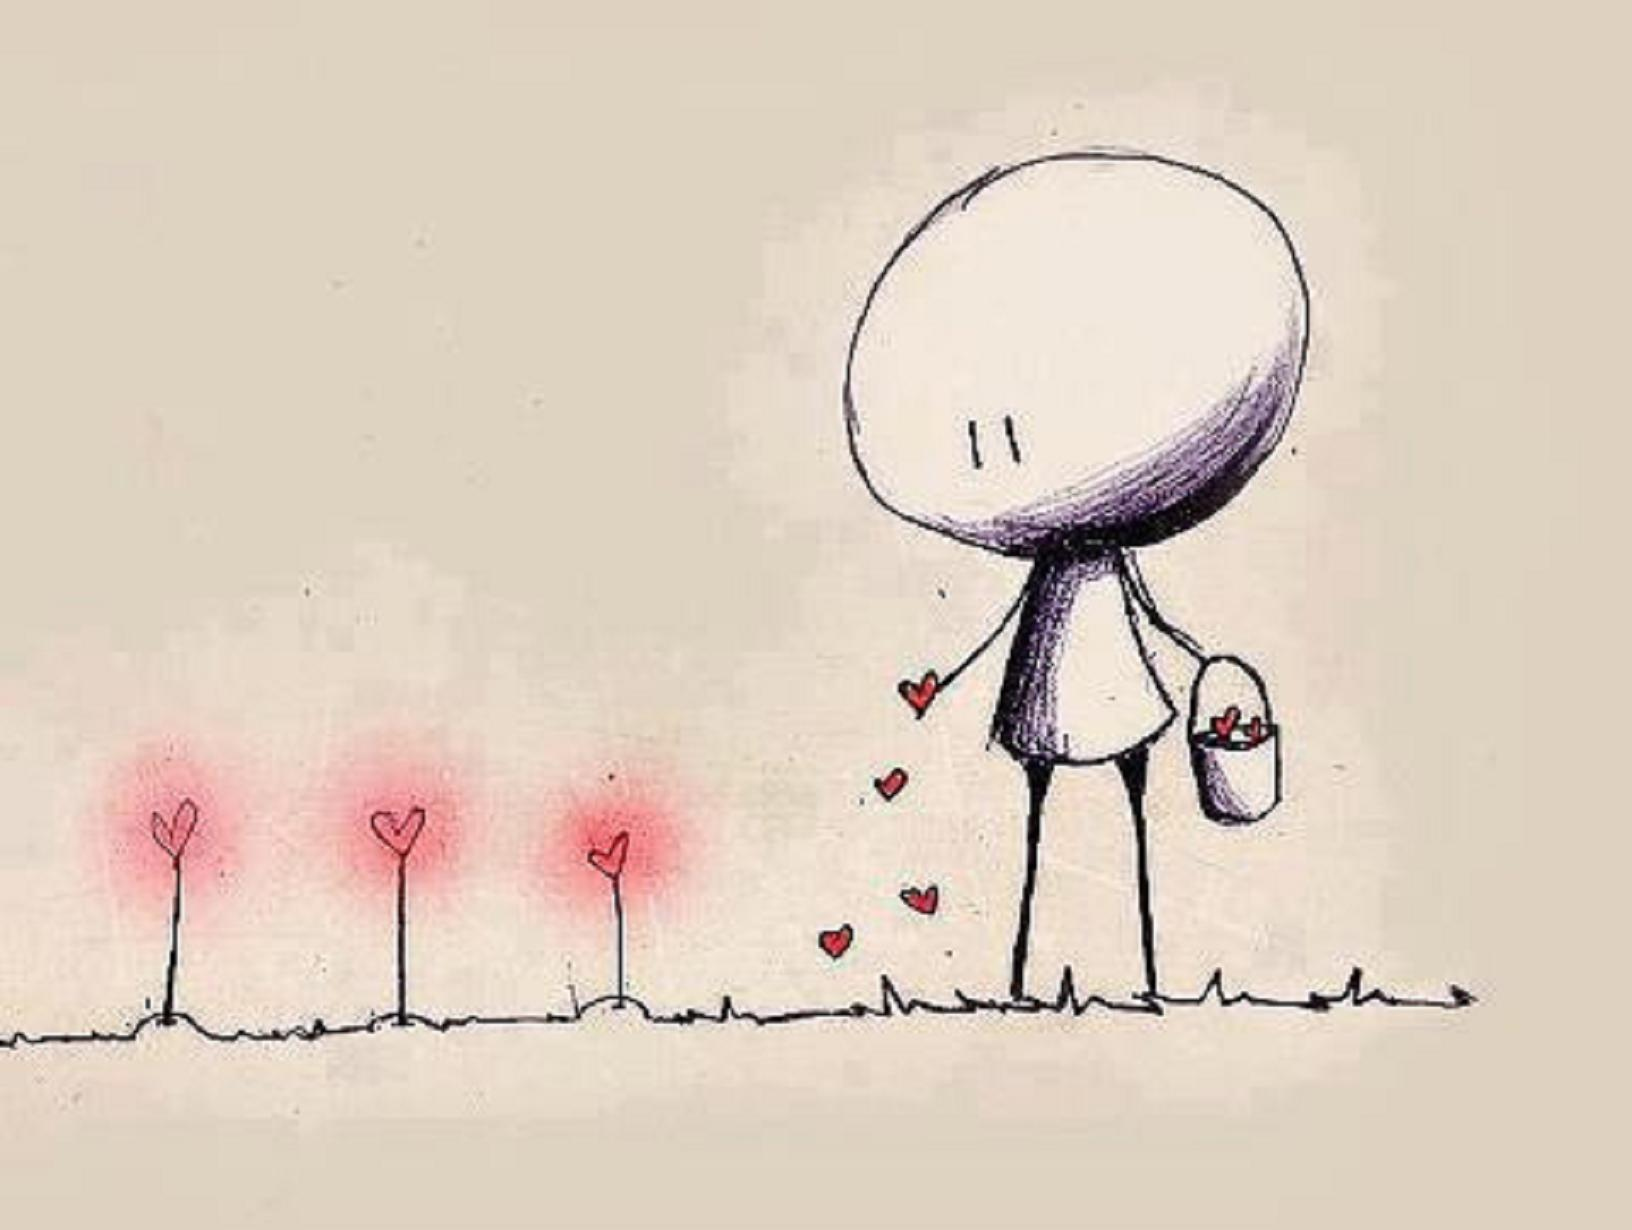 Plant the seeds of love